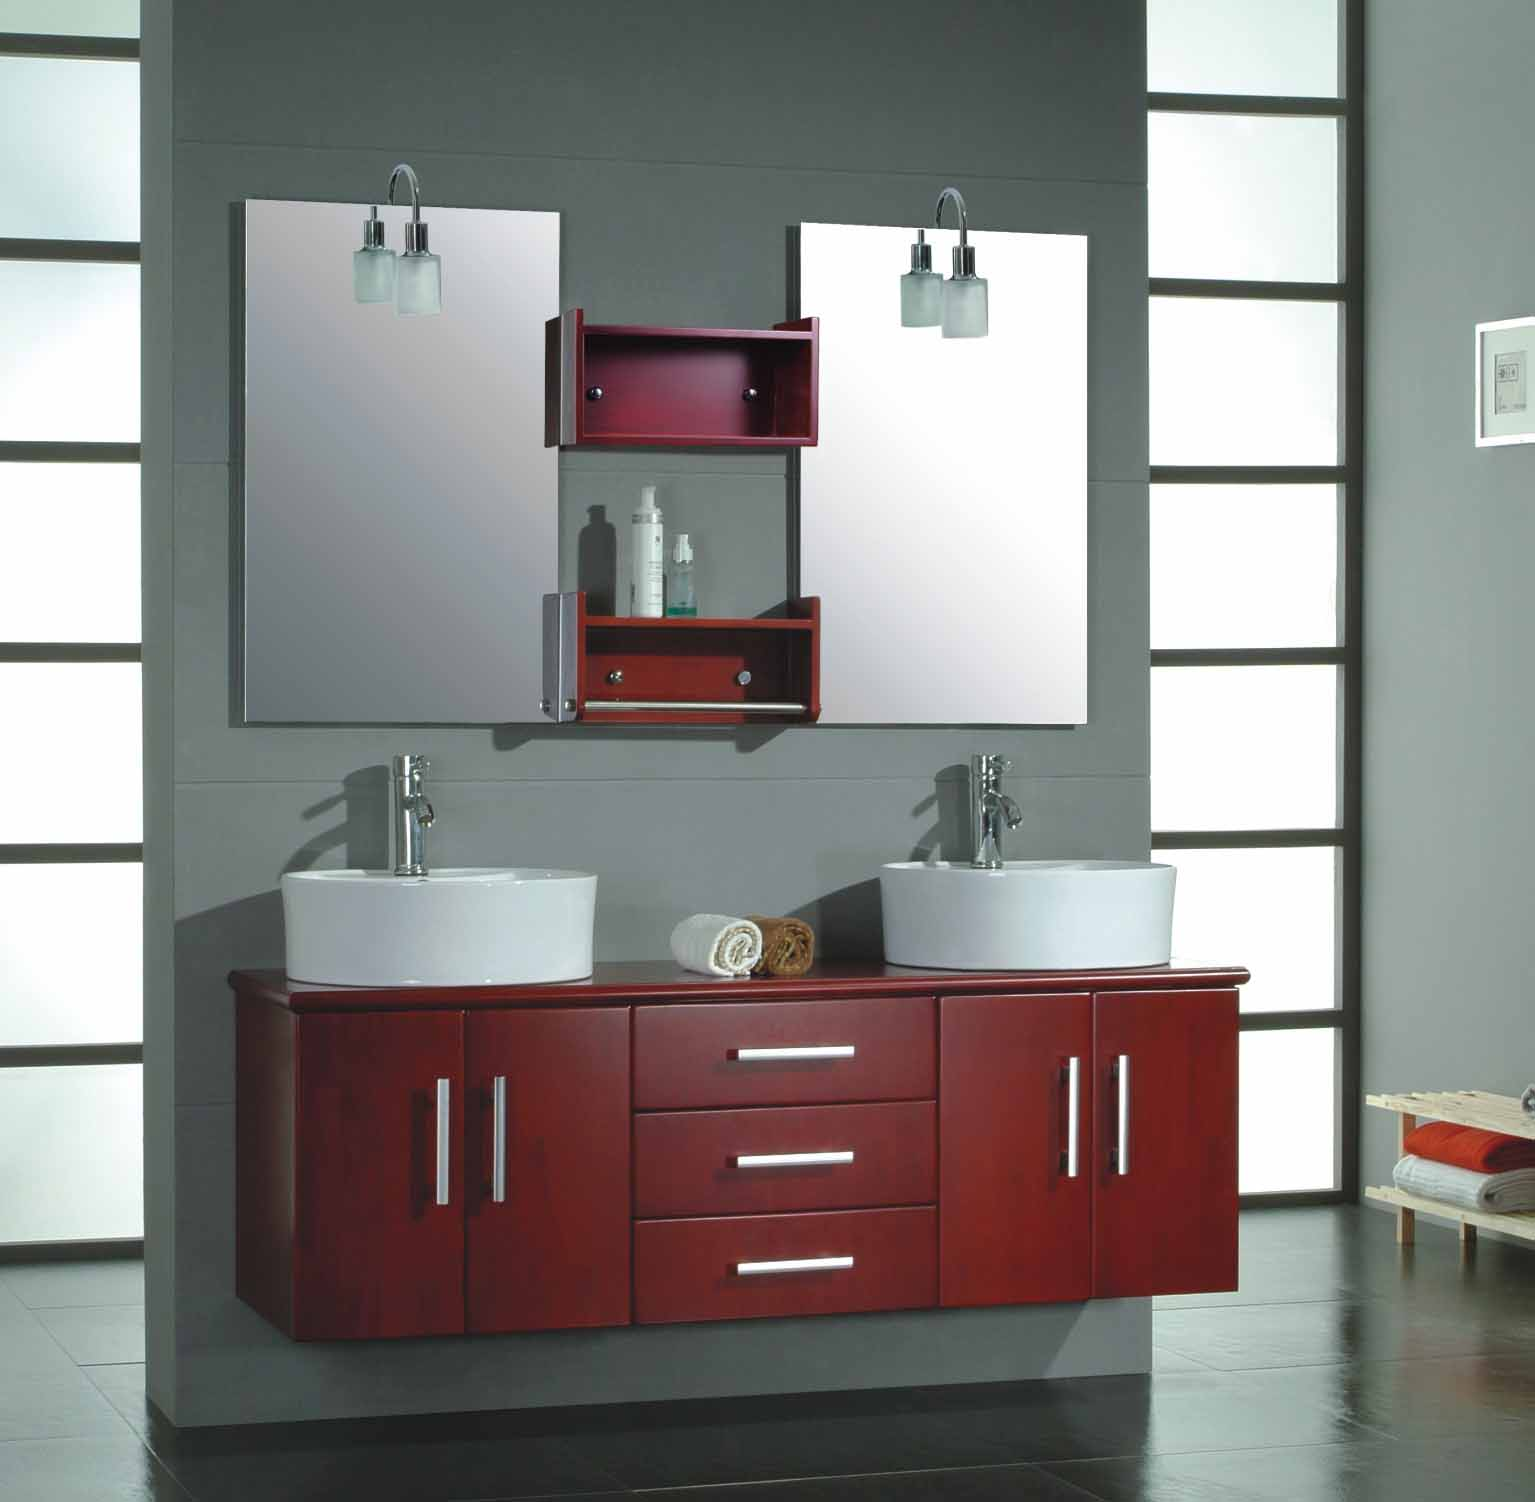 Interior design ideas bathroom furniture choosing for Accesorios lavabo